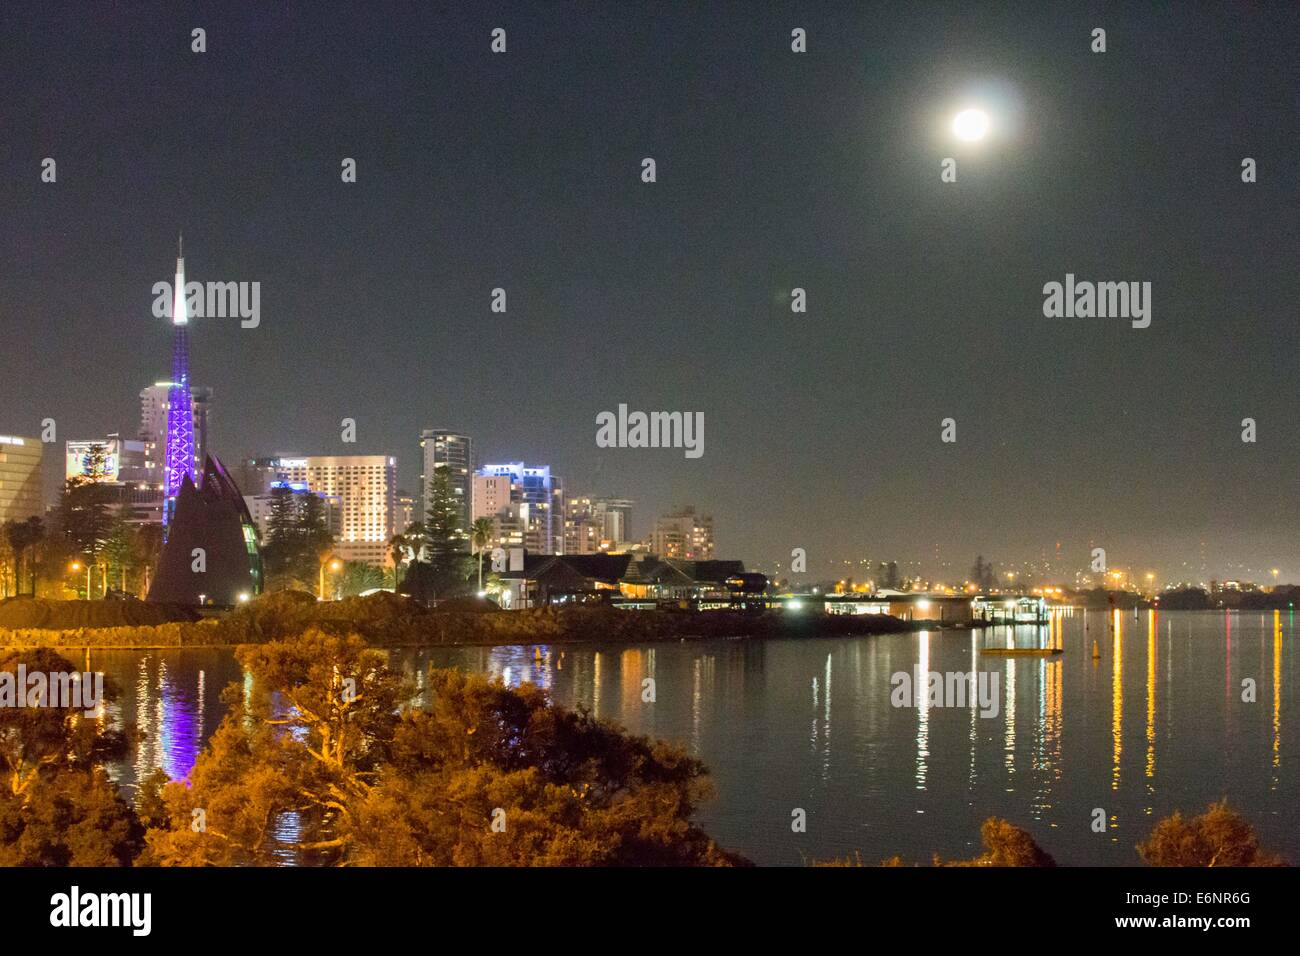 full moon night over Perth - Stock Image